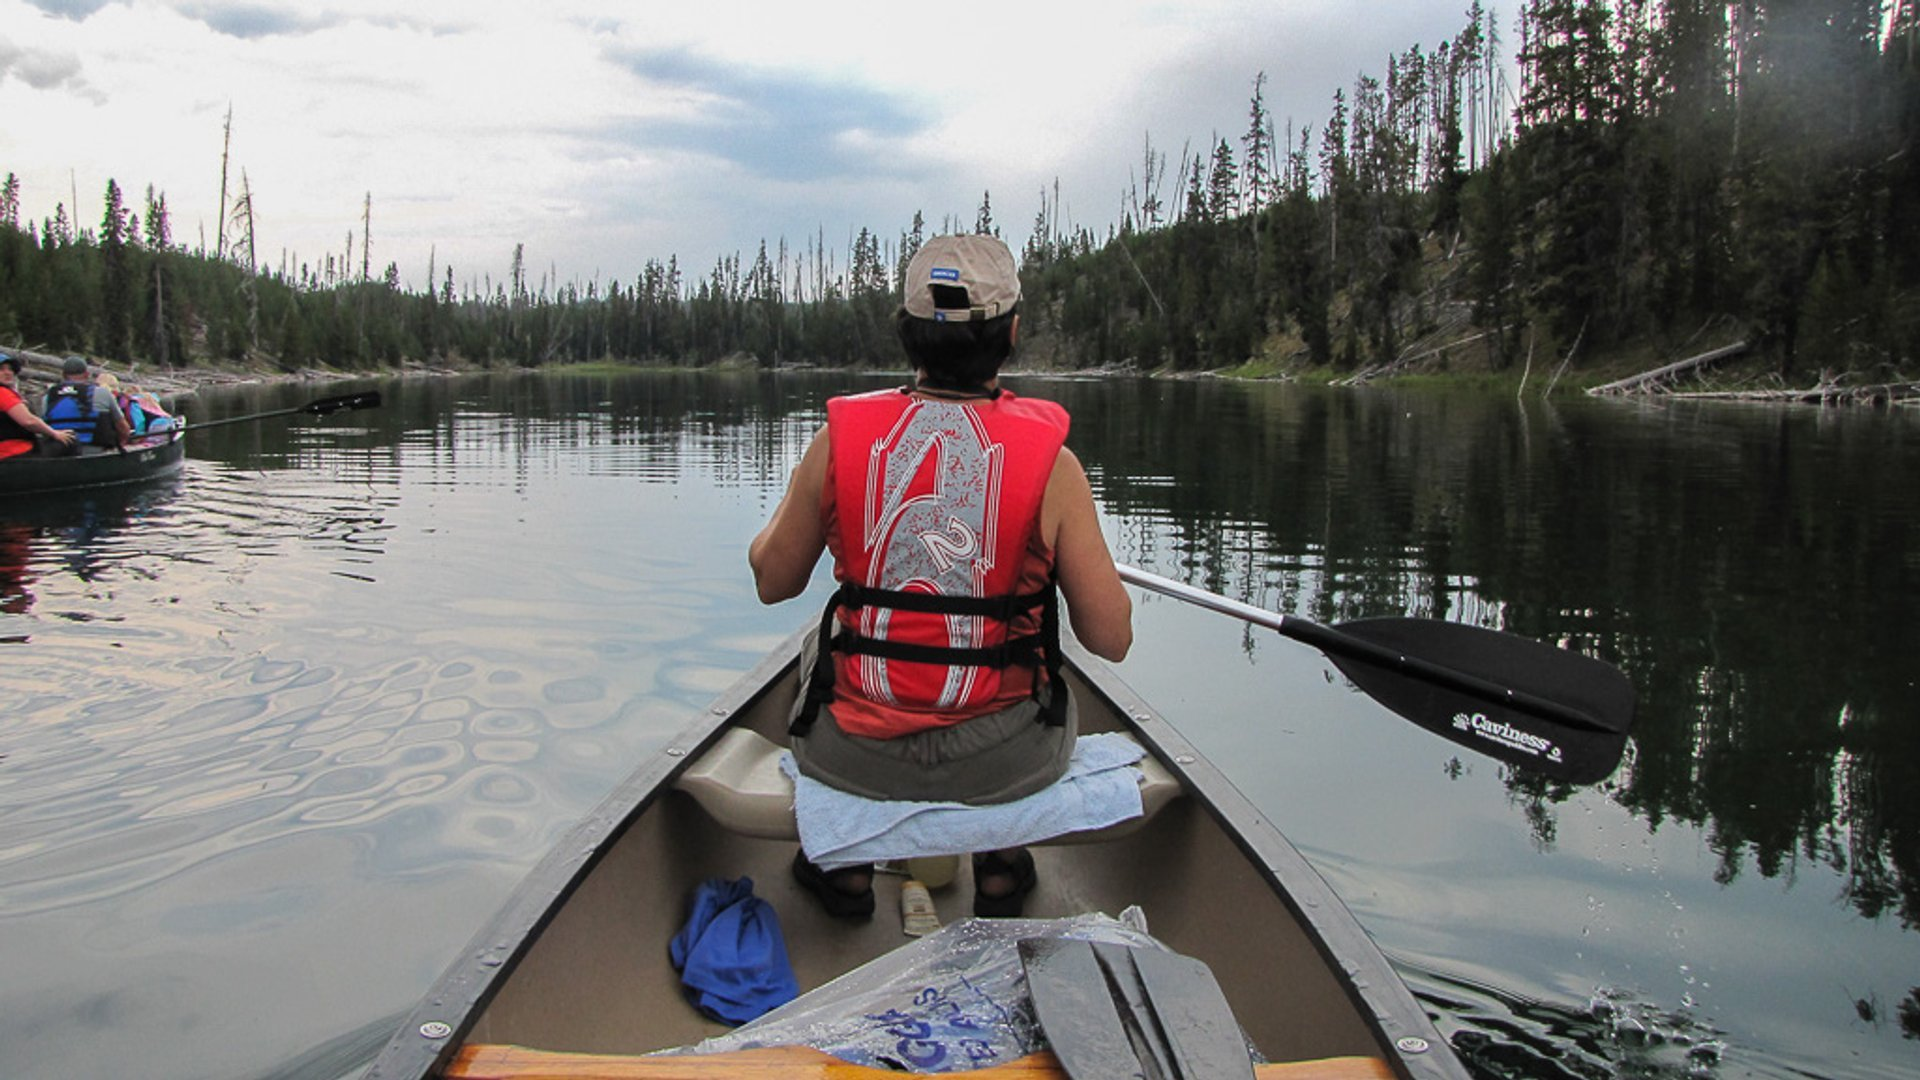 Canoeing on the Lewis River Channel 2019